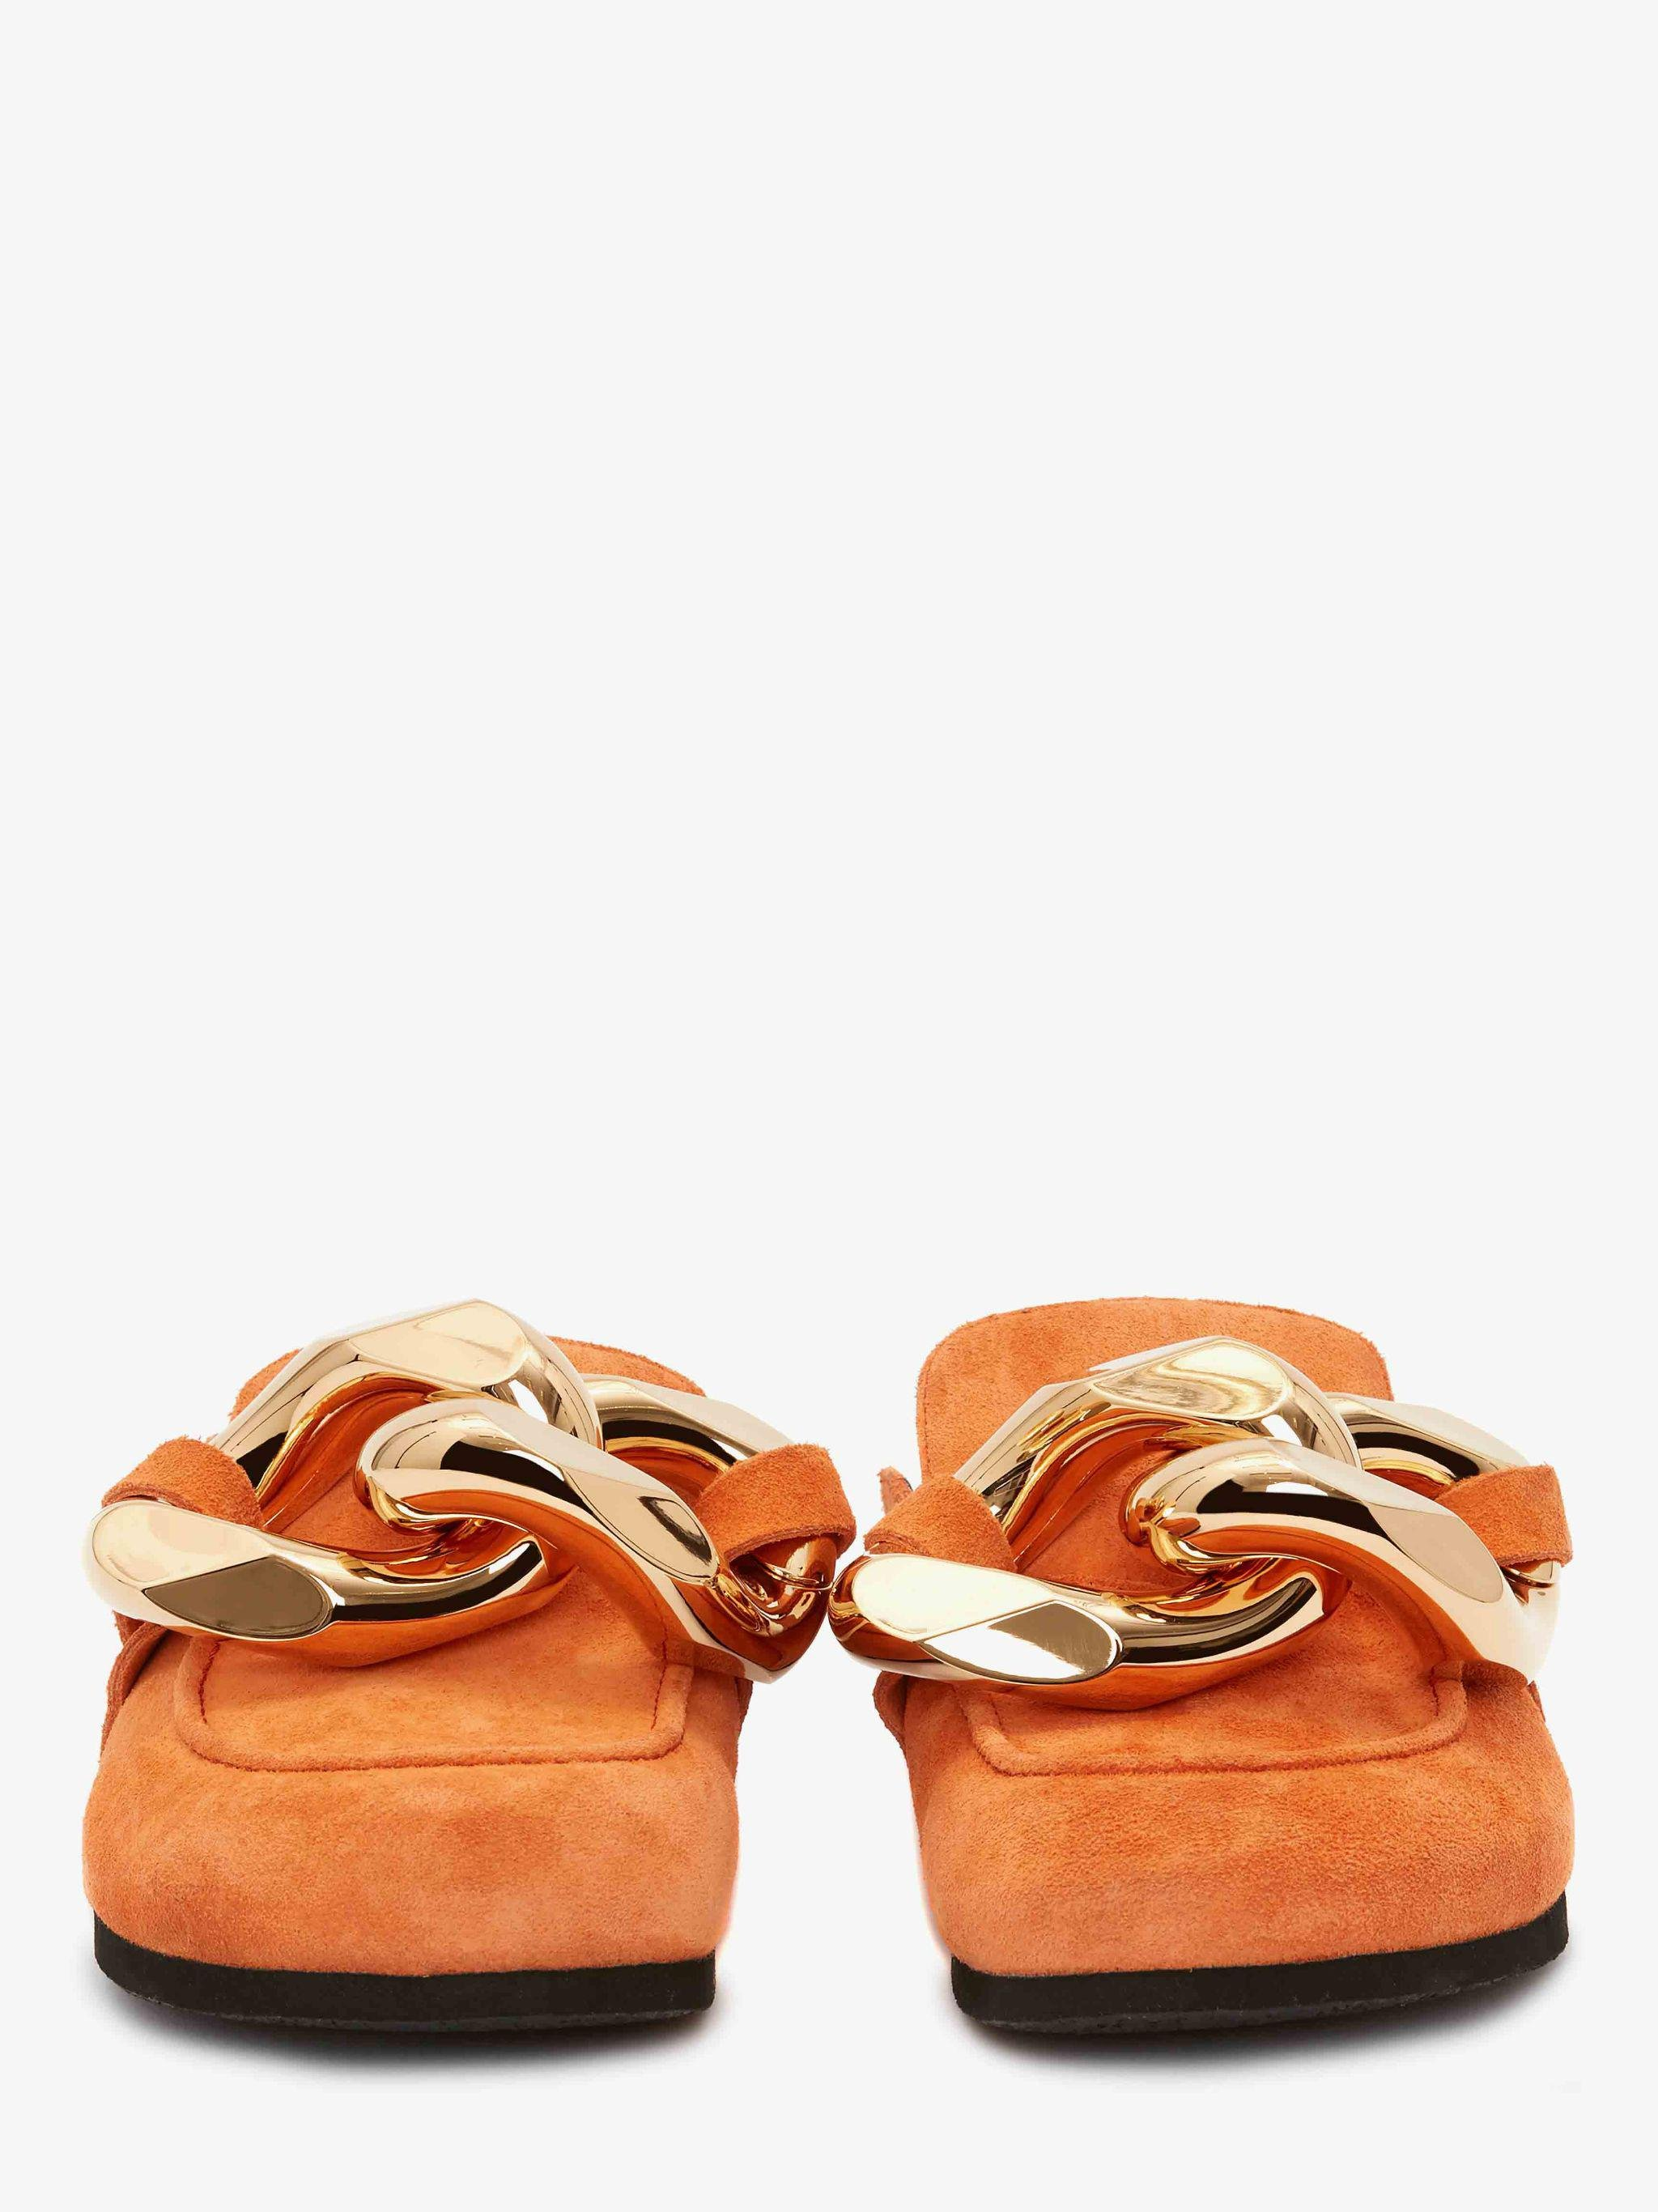 WOMEN'S CHAIN LOAFER - SUEDE 2